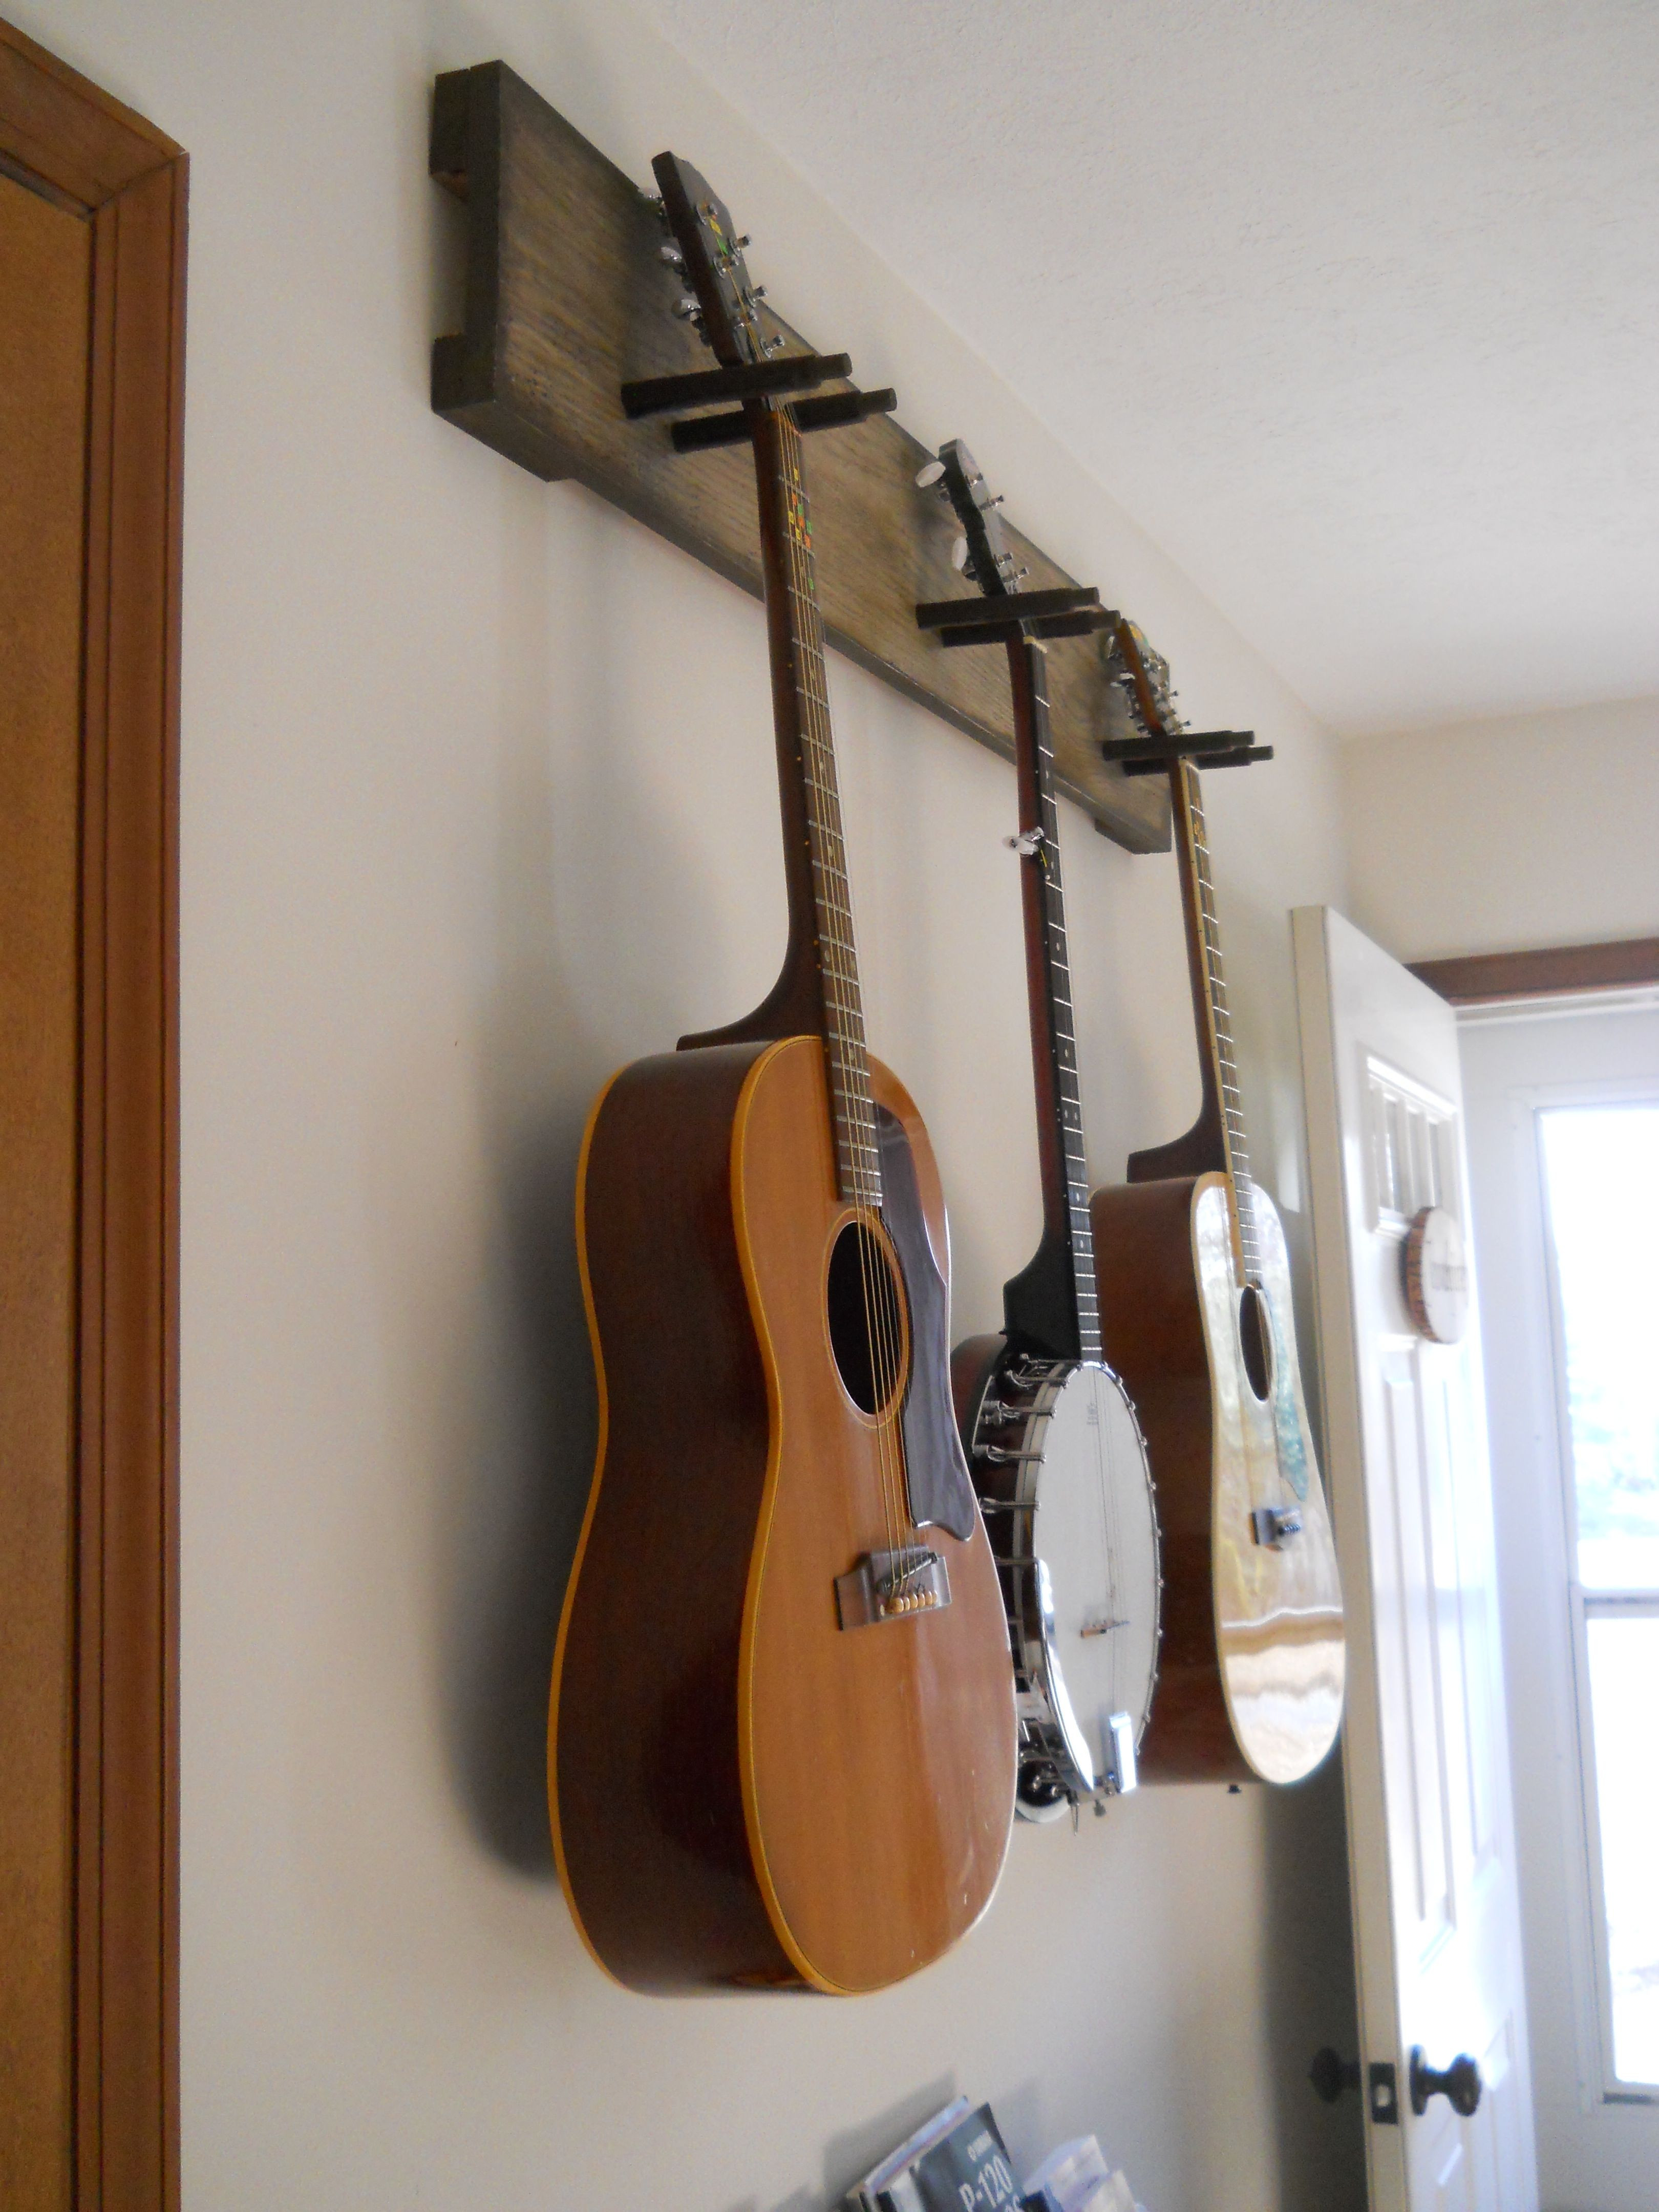 Best ideas about Guitar Wall Hanger DIY . Save or Pin DIY guitar hanger simple & secure We practice so much Now.